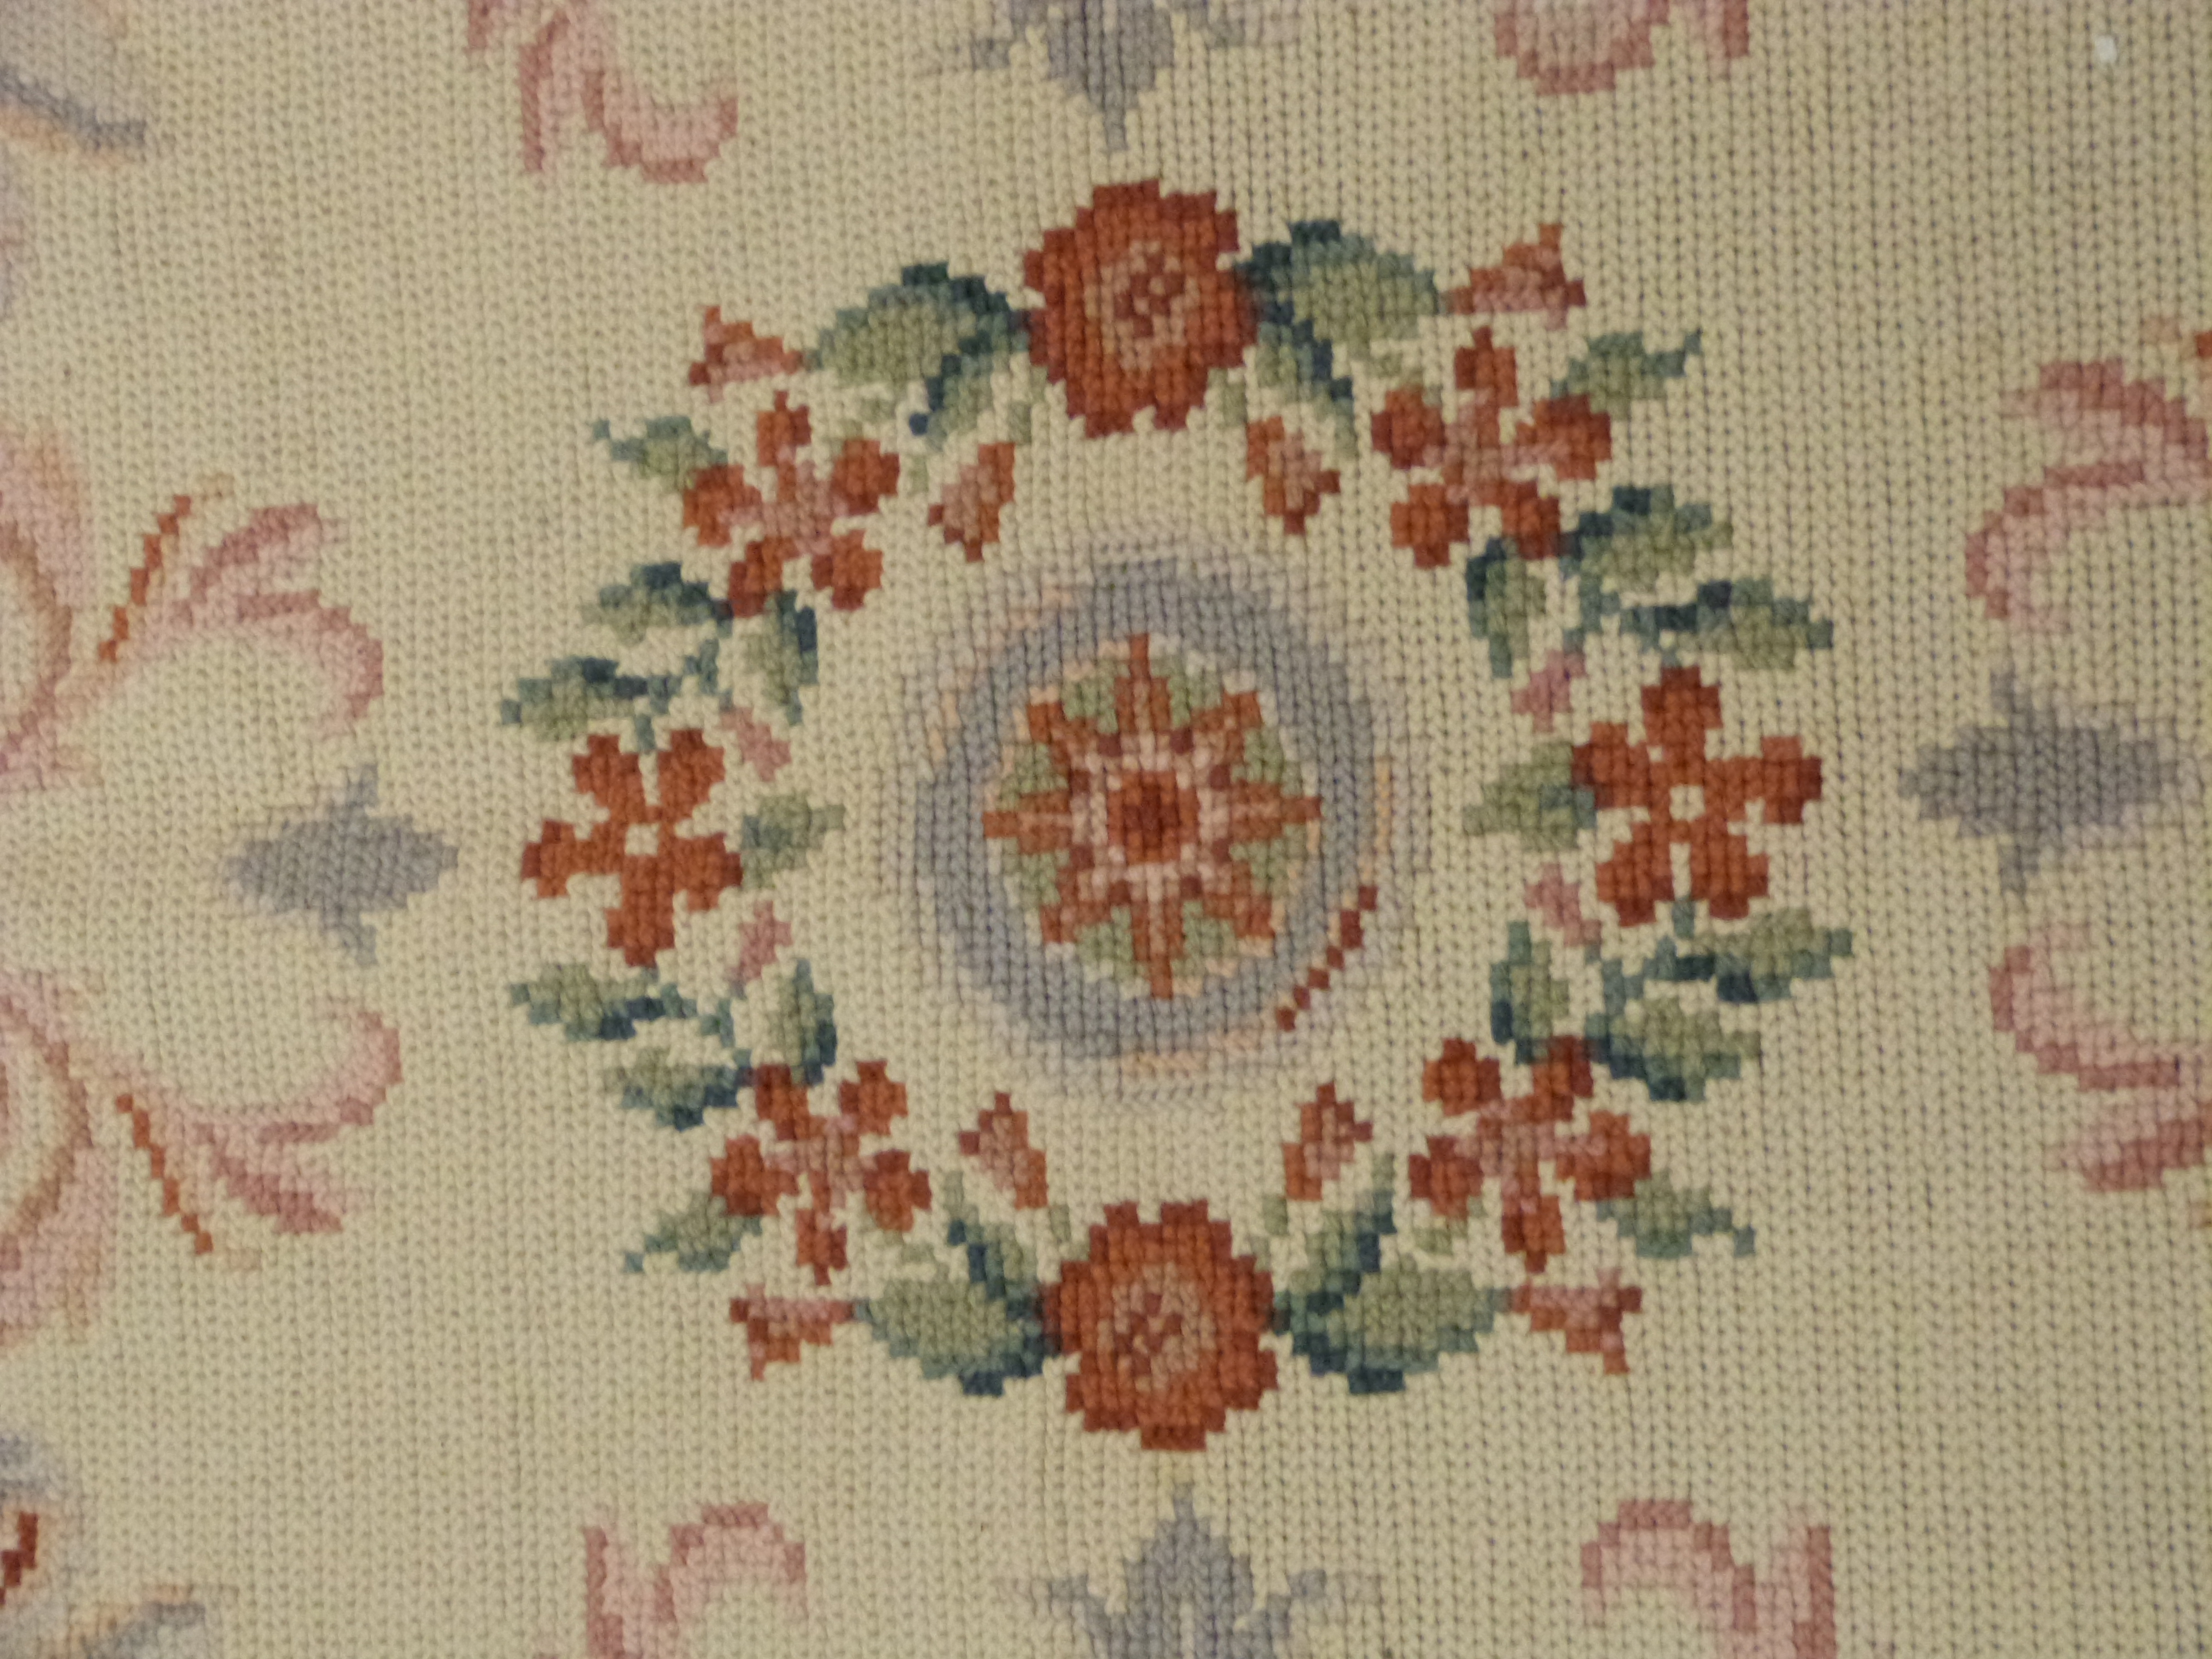 Woolwork carpet, cream ground, pink and green designs, green foliate scroll border 10 x 8ft - Image 3 of 3